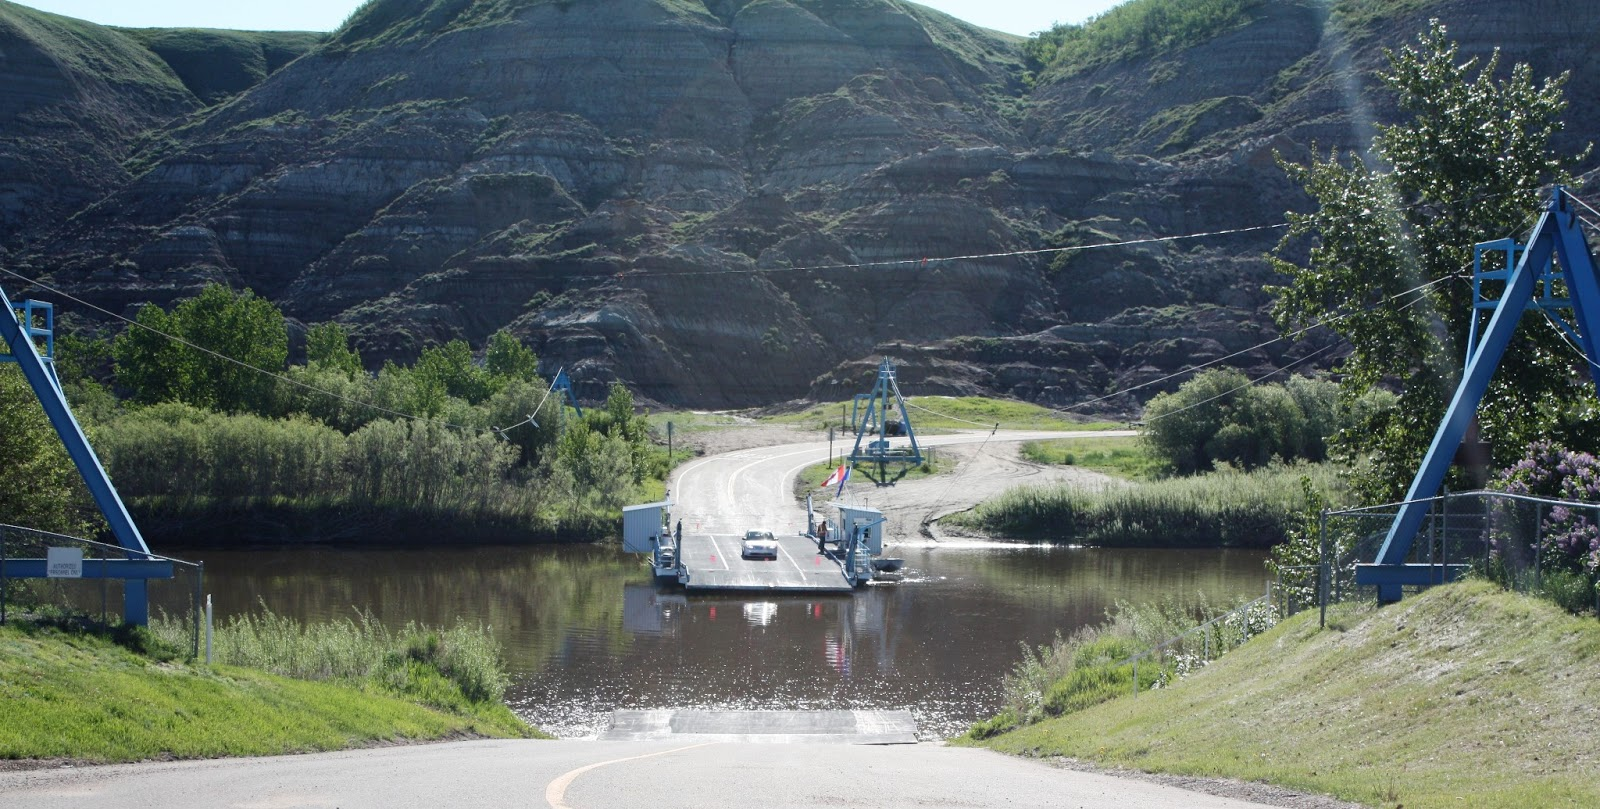 006 - Crossing The Red Deer River on the Bleriot Ferry